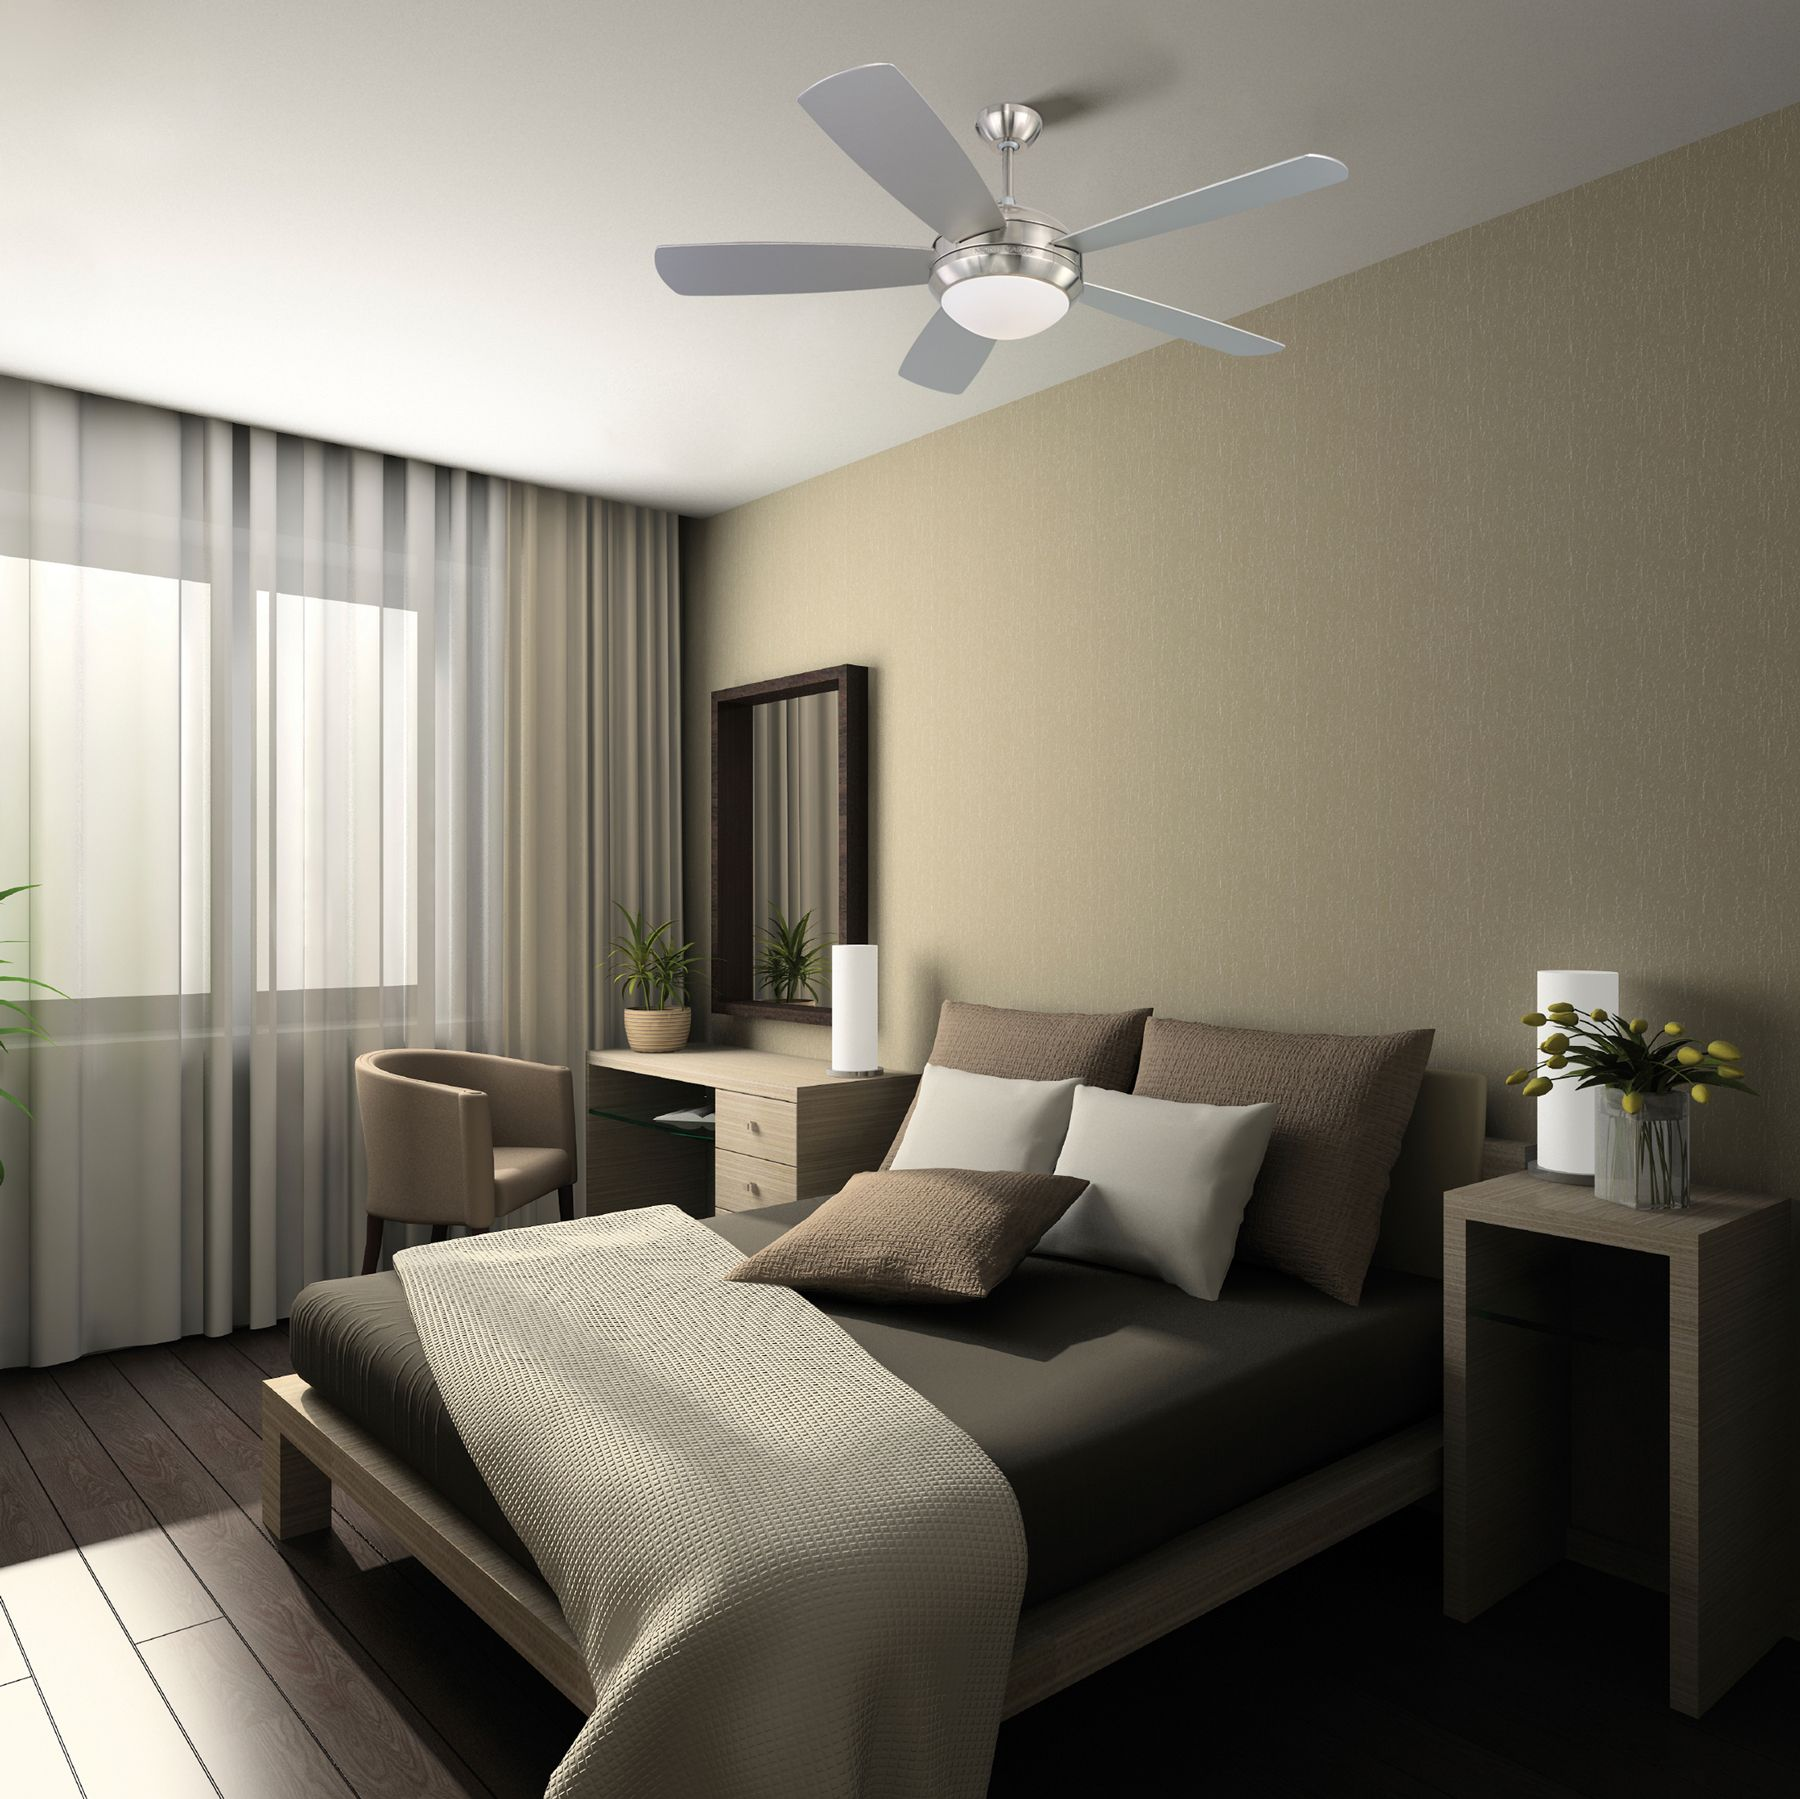 Discus Ceiling Fan Monte Carlo At Lightology Suites Guestrooms  ~ Decoracion Dormitorios Matrimoniales